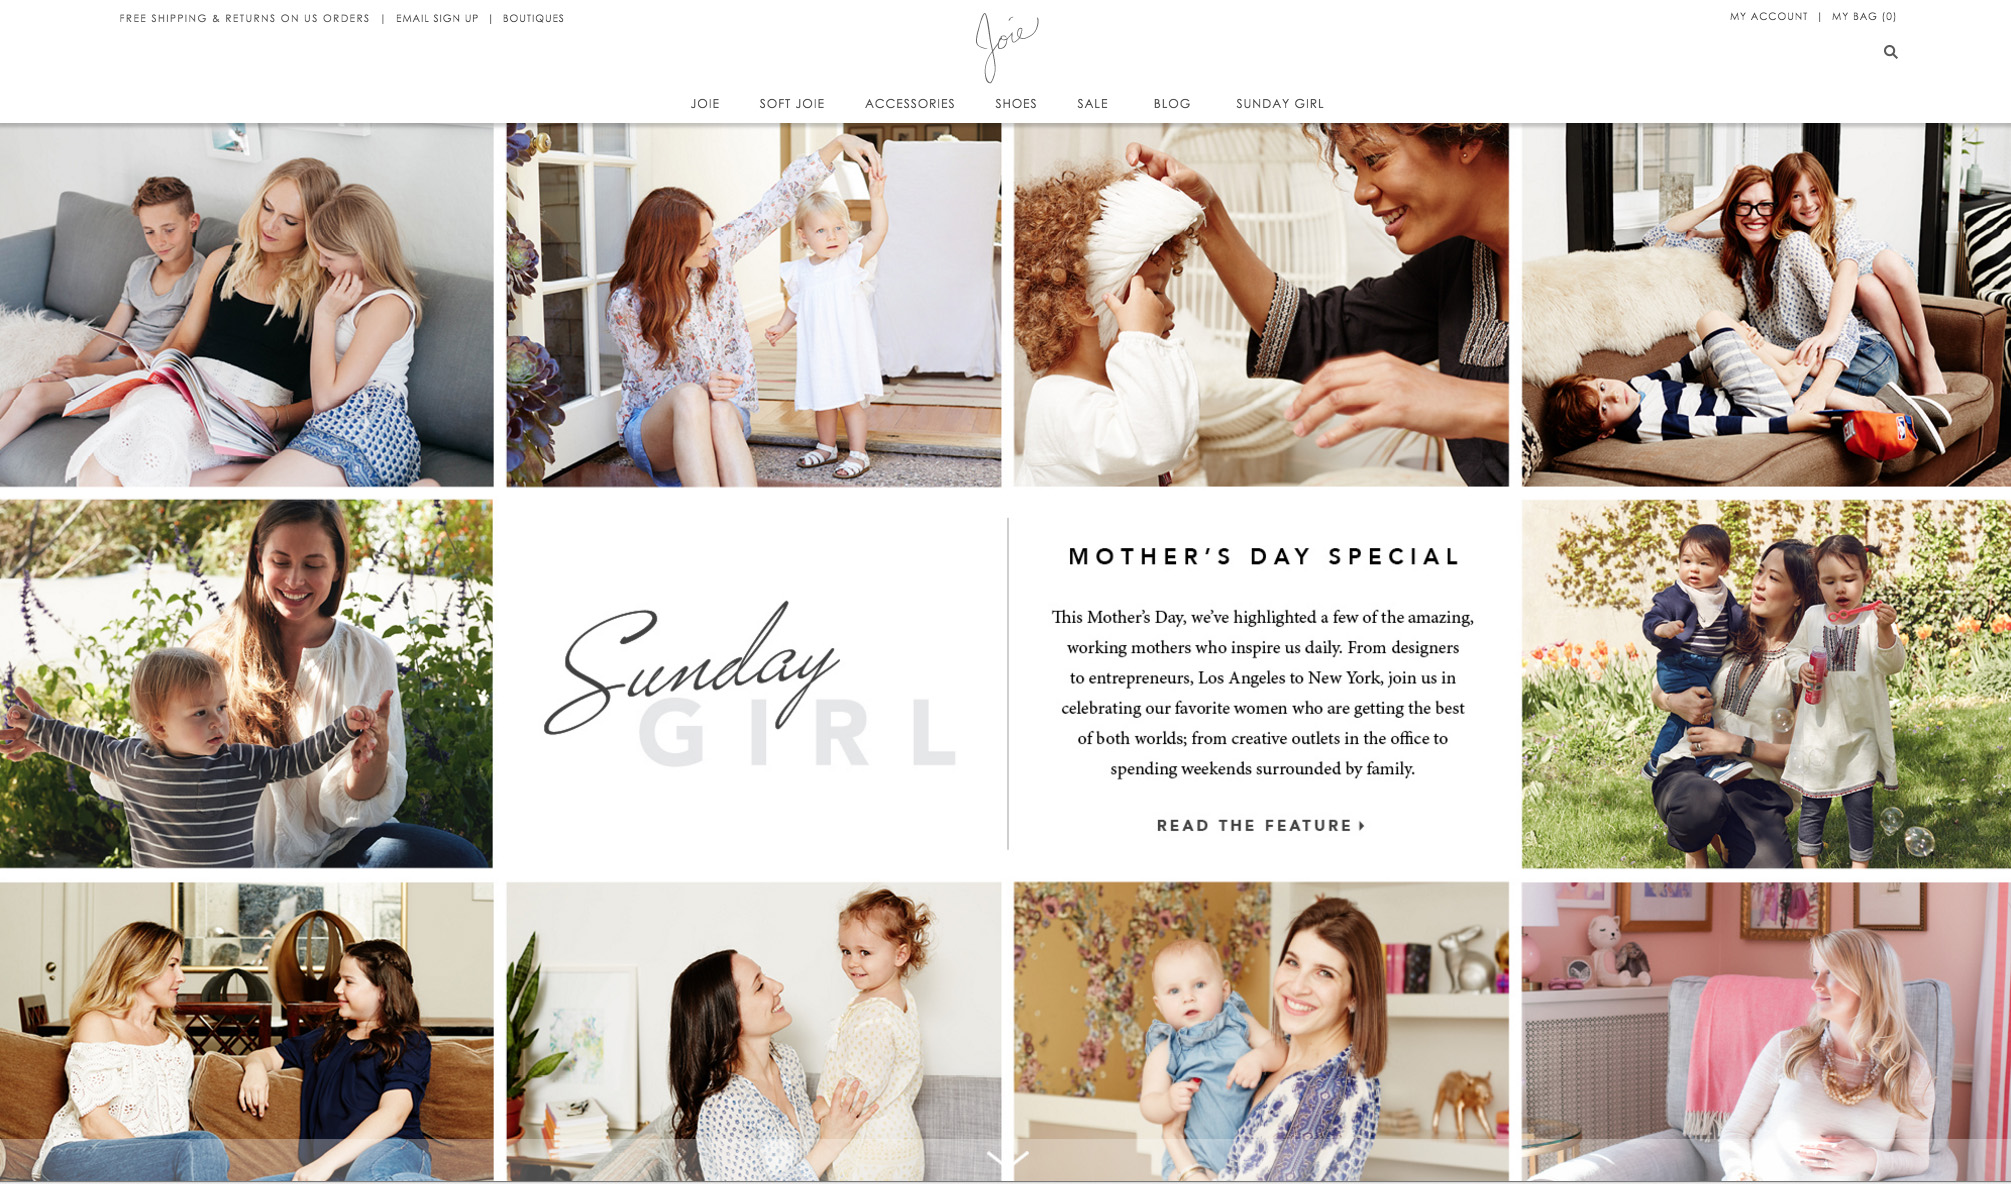 The Joie homepage featuring some really amazing mamas - I am left humbled and inspired.  Once Baby N is born, I think I'll be channeling the spirit of these ladies who all make it look so easy!